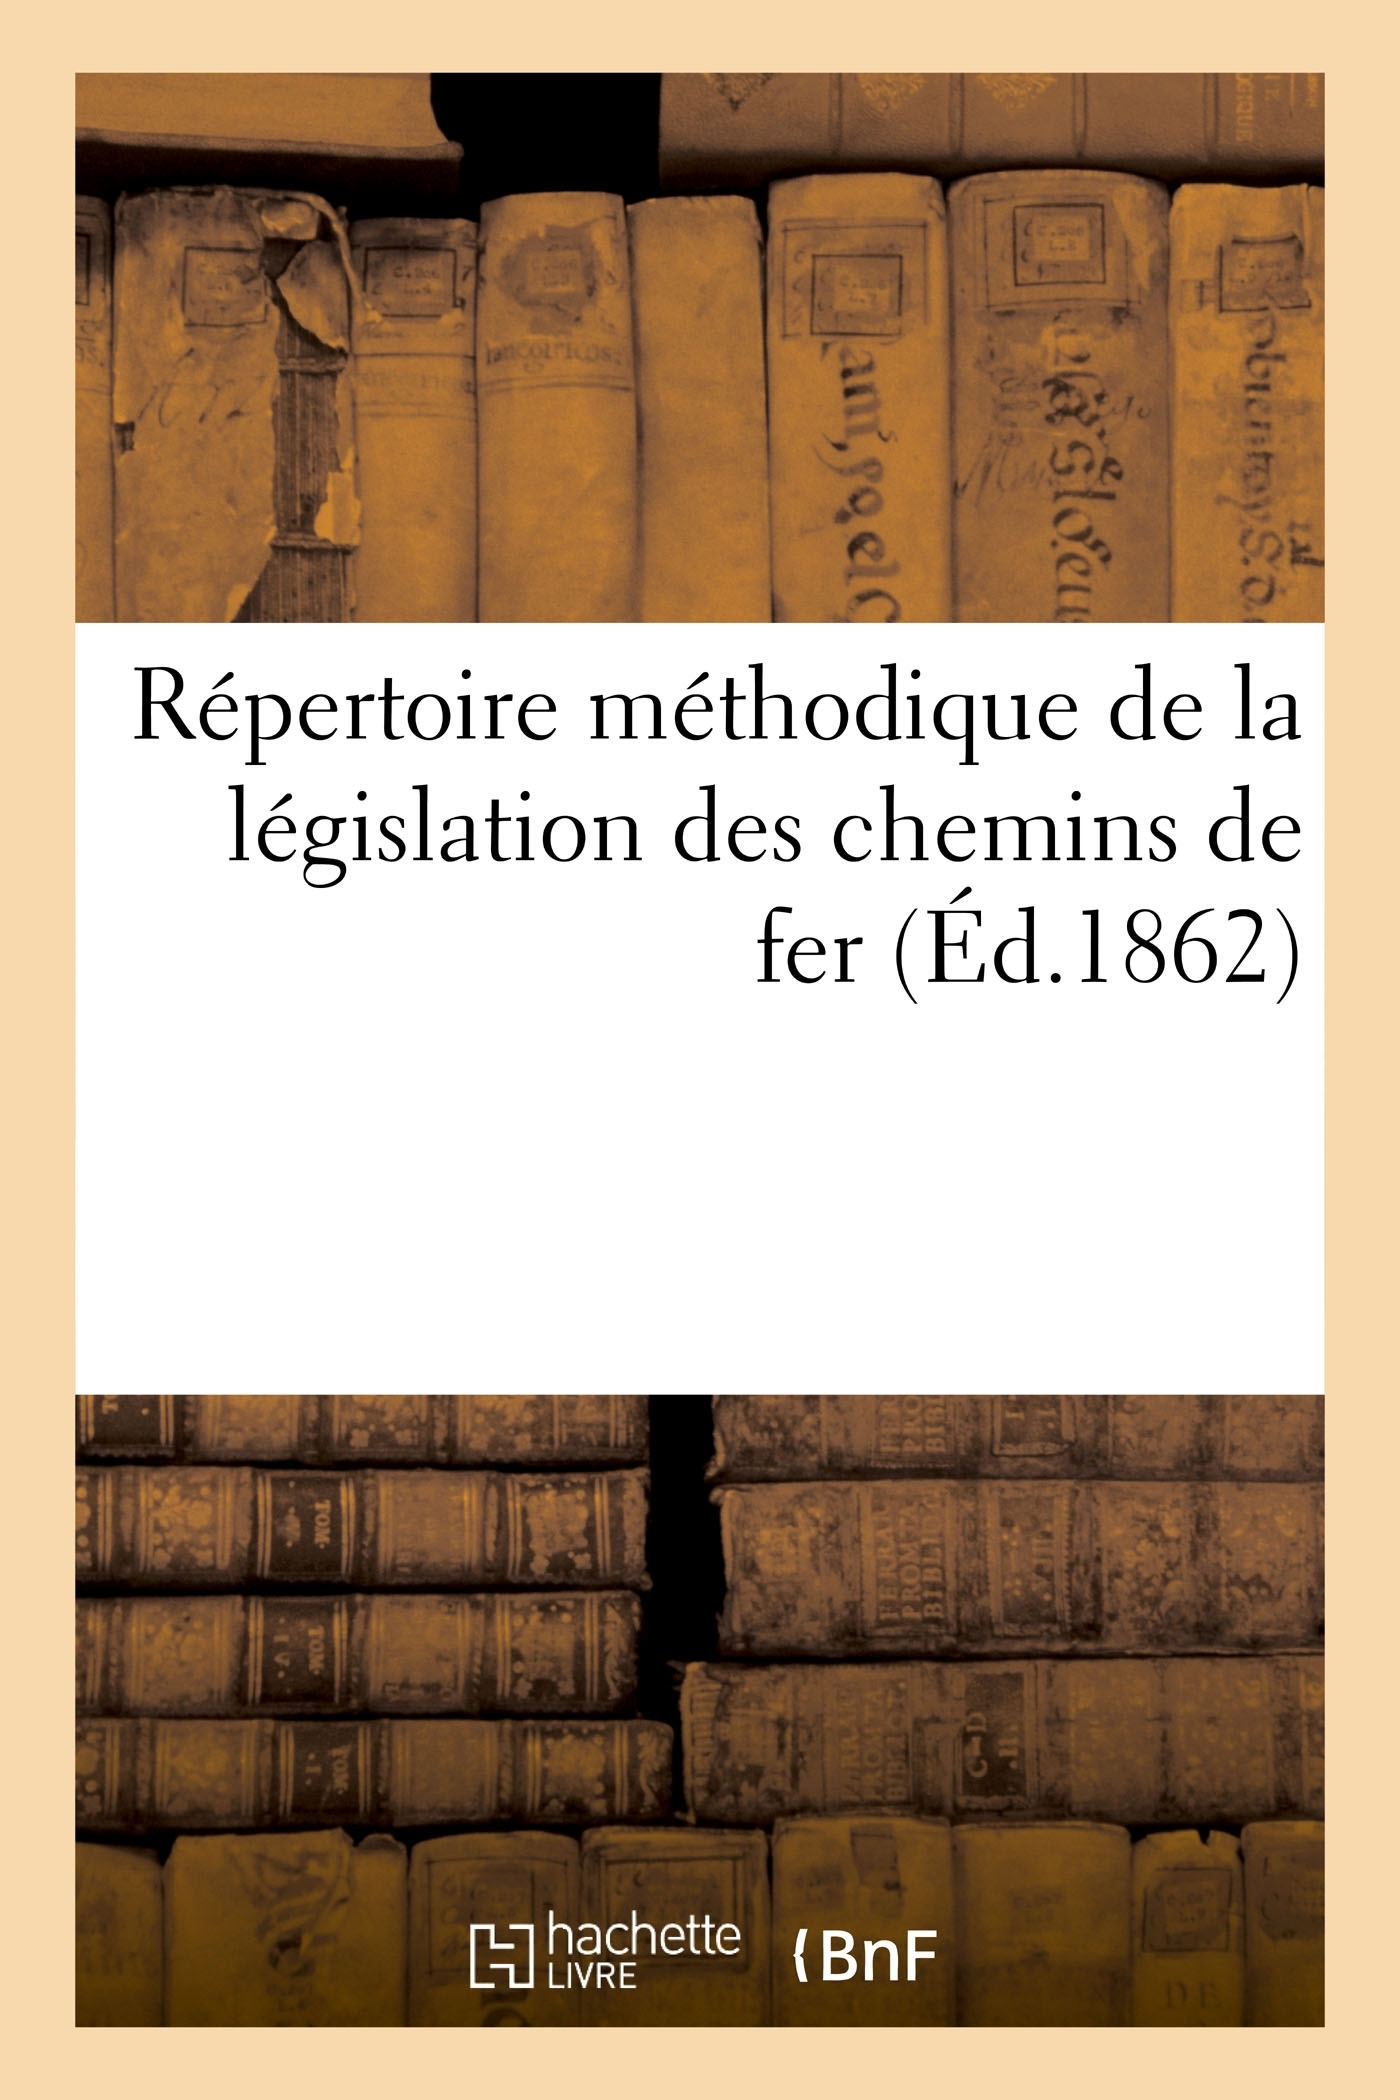 REPERTOIRE METHODIQUE DE LA LEGISLATION DES CHEMINS DE FER - MINISTERE DE L'AGRICULTURE, DU COMMERCE